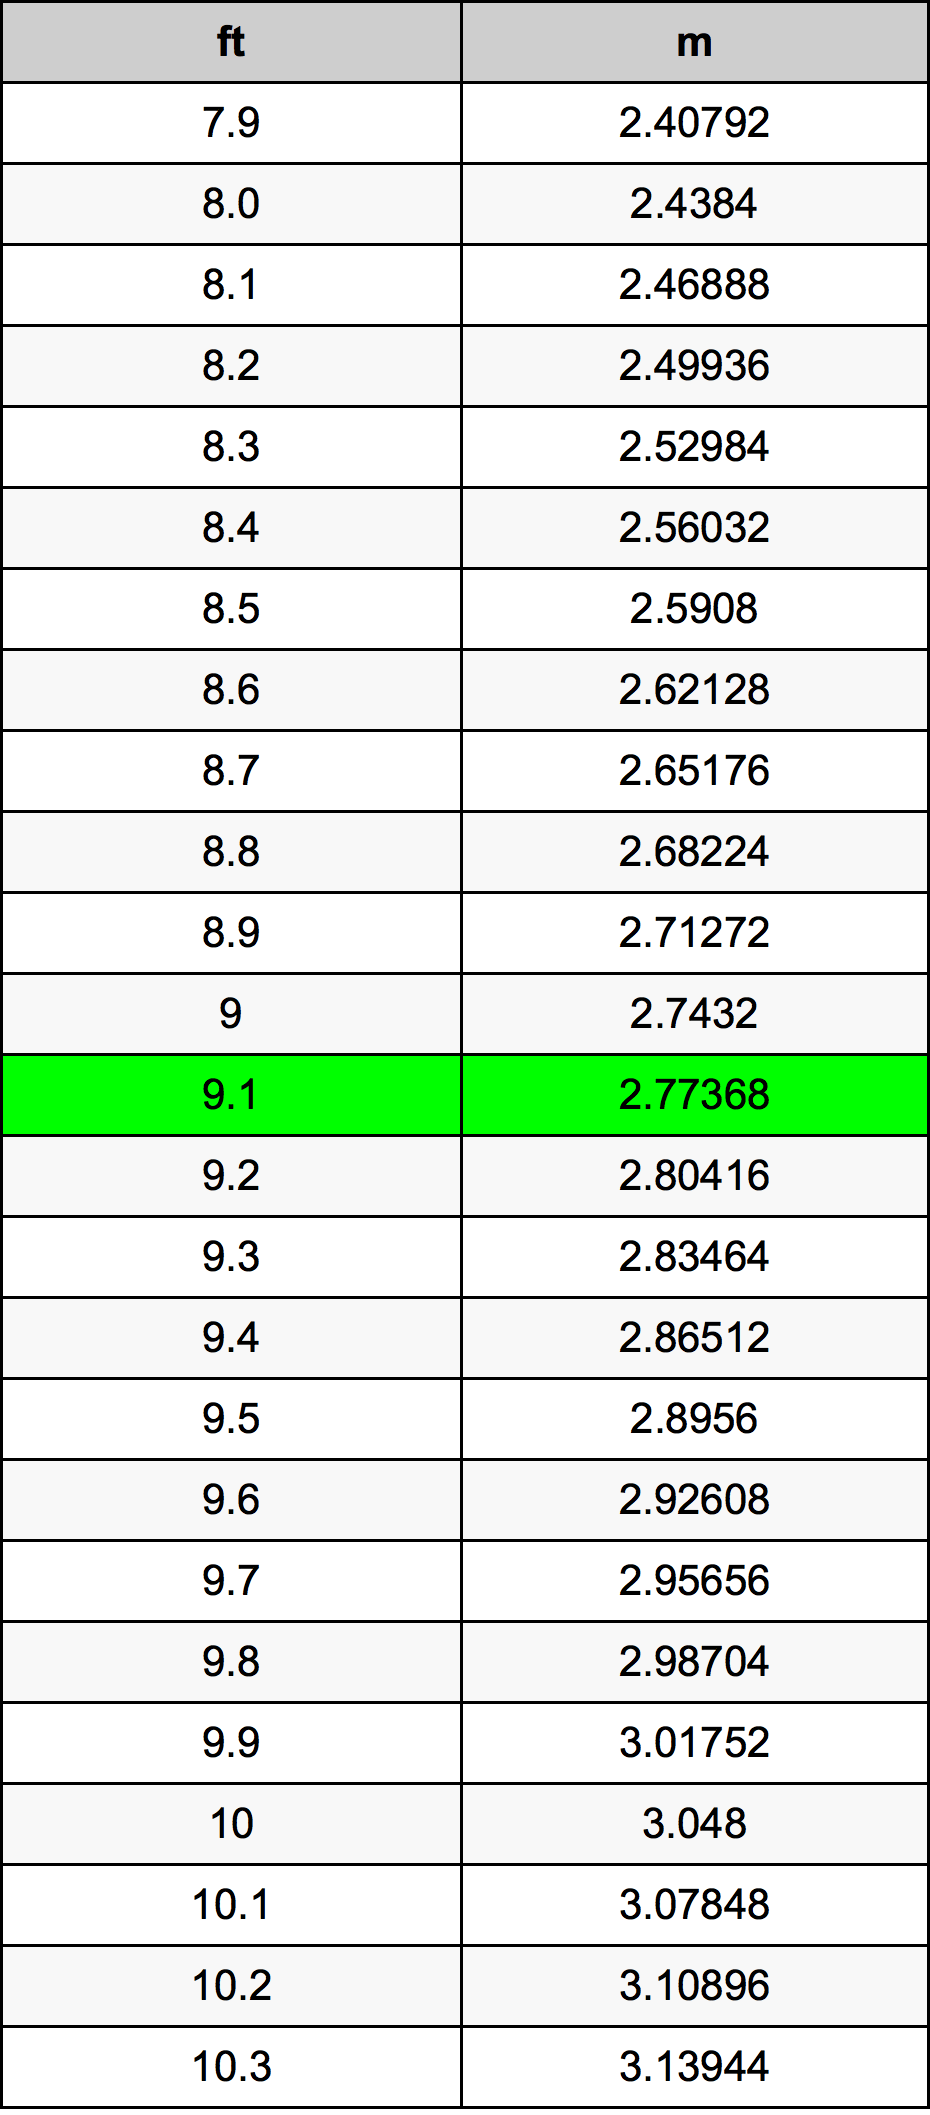 Further Feet To Meters Calculations